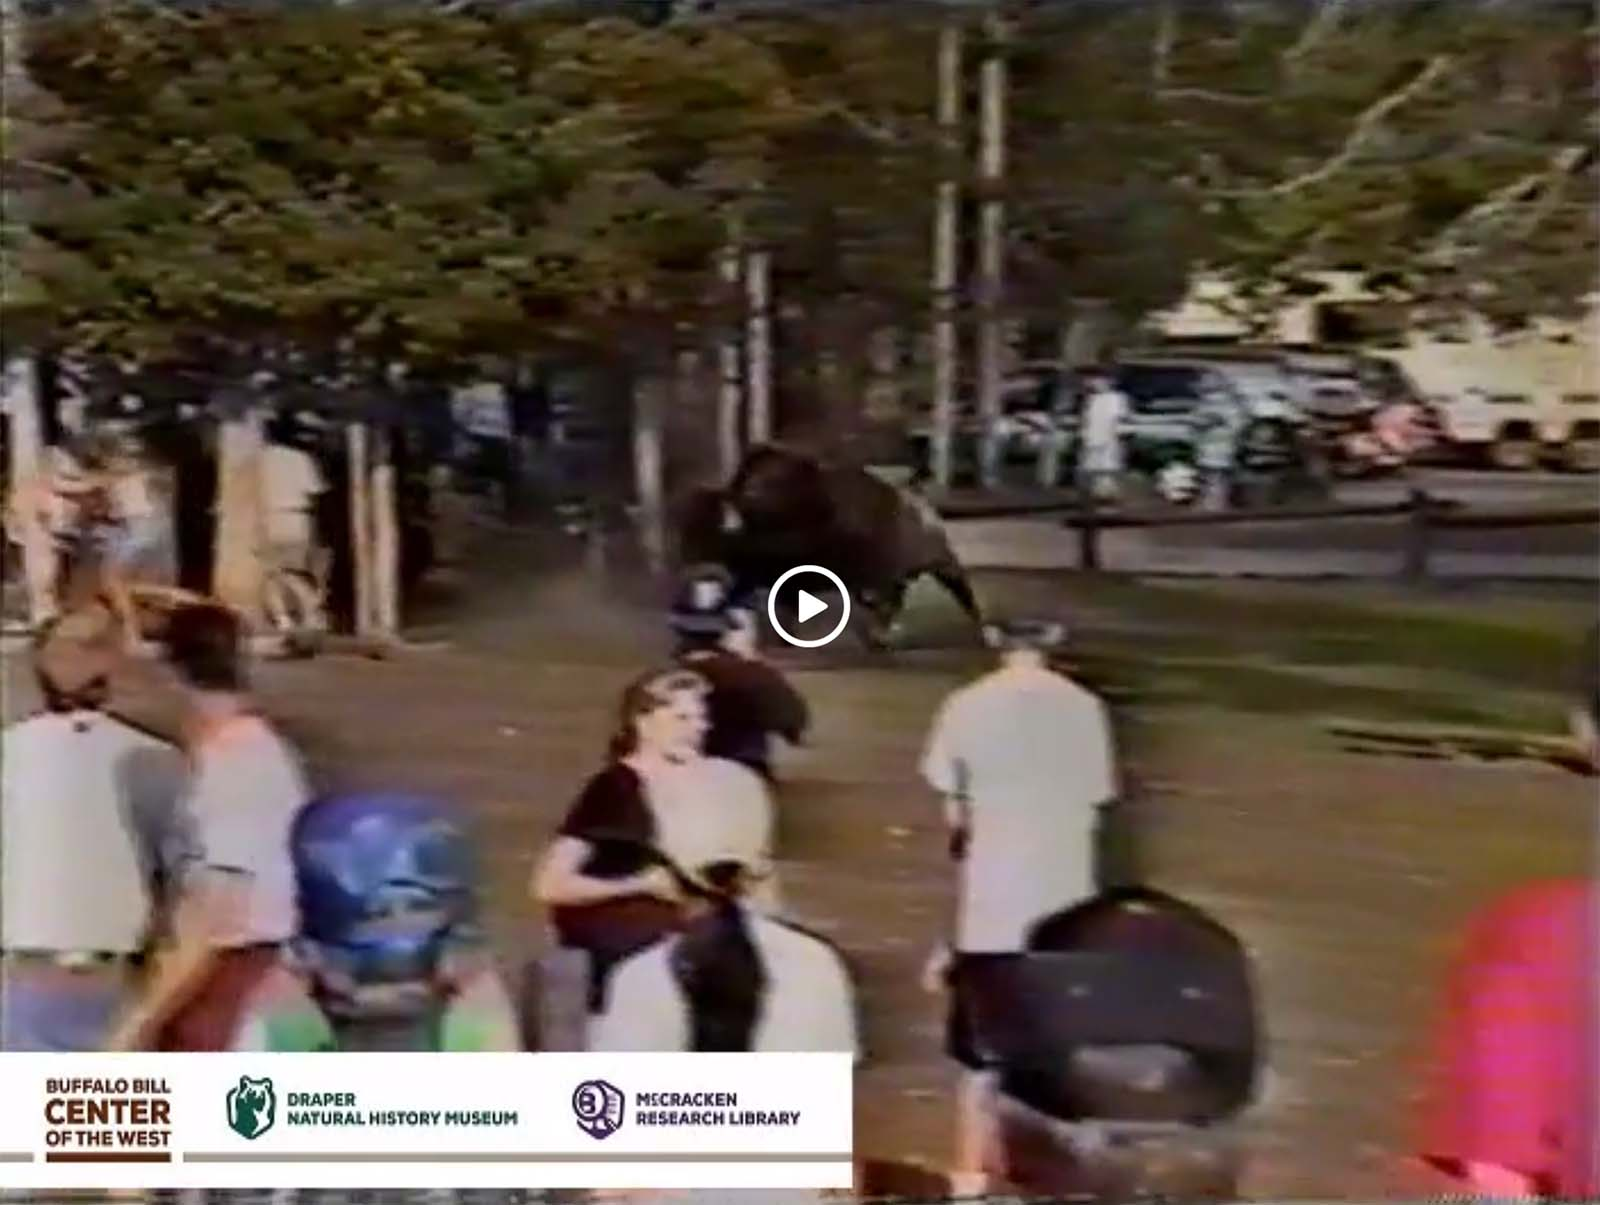 Video still of bison and a too-close crowd. Greater Yellowstone Sights and Sounds Archive. 430.177.003 / DRA501.177.3